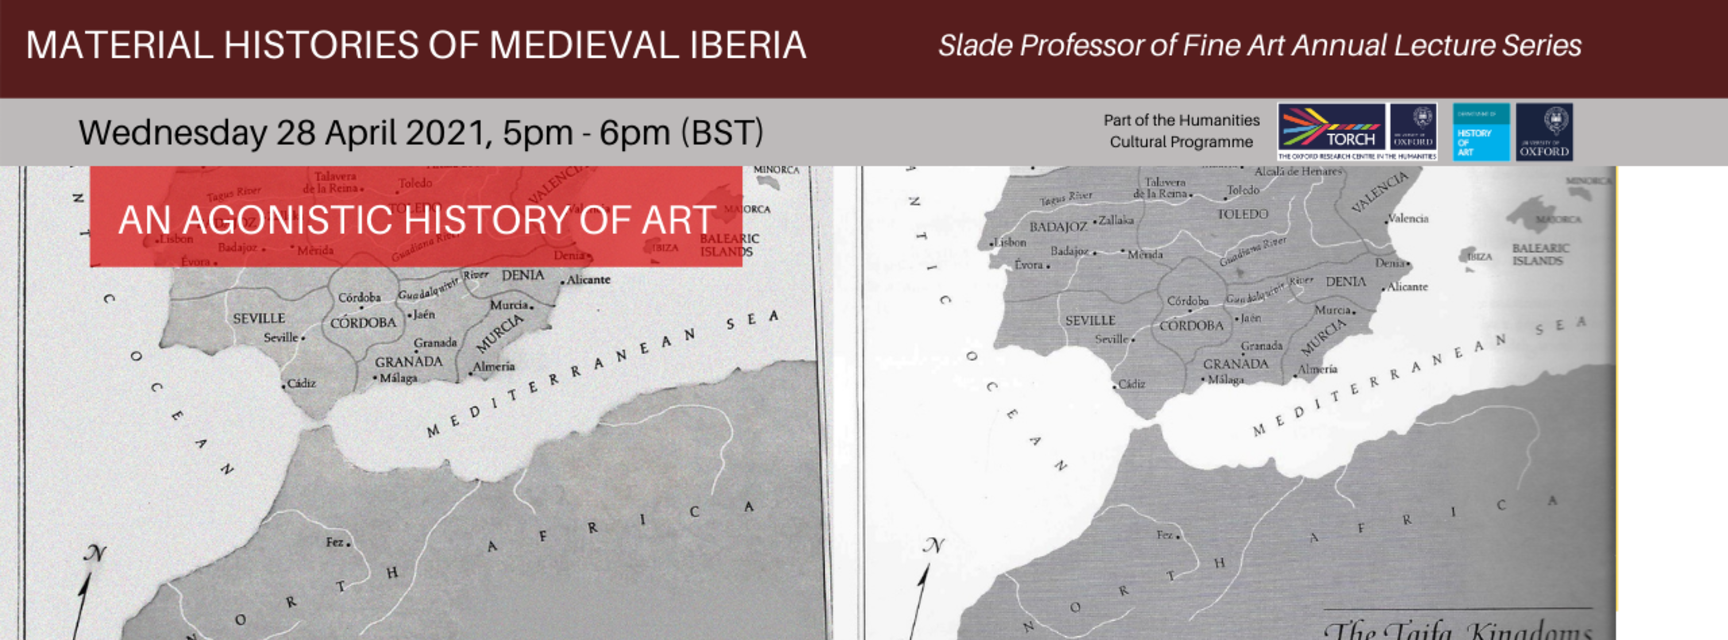 Two photos of maps, overlaid with red and grey boxes reading 'Material Histories of Medieval Iberia: An Agonistic History of Art. Slade Professor of Fine Art Annual Lecture Series. Wednesday 28 April 2021, 5pm - 6pm BST'